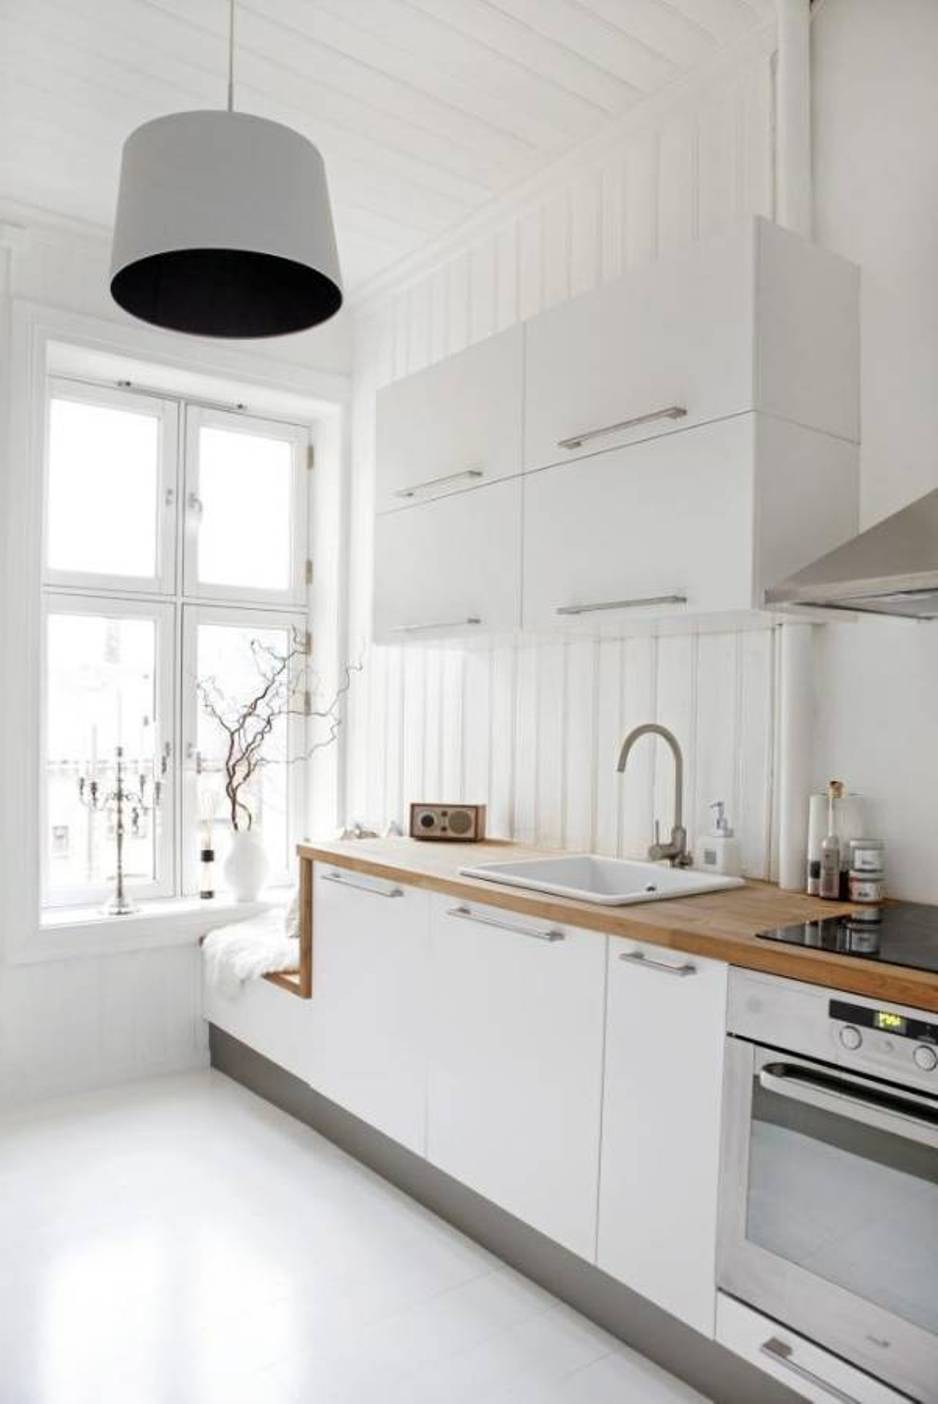 10 amazing scandinavian kitchen interior design ideas for Kitchen decoration designs